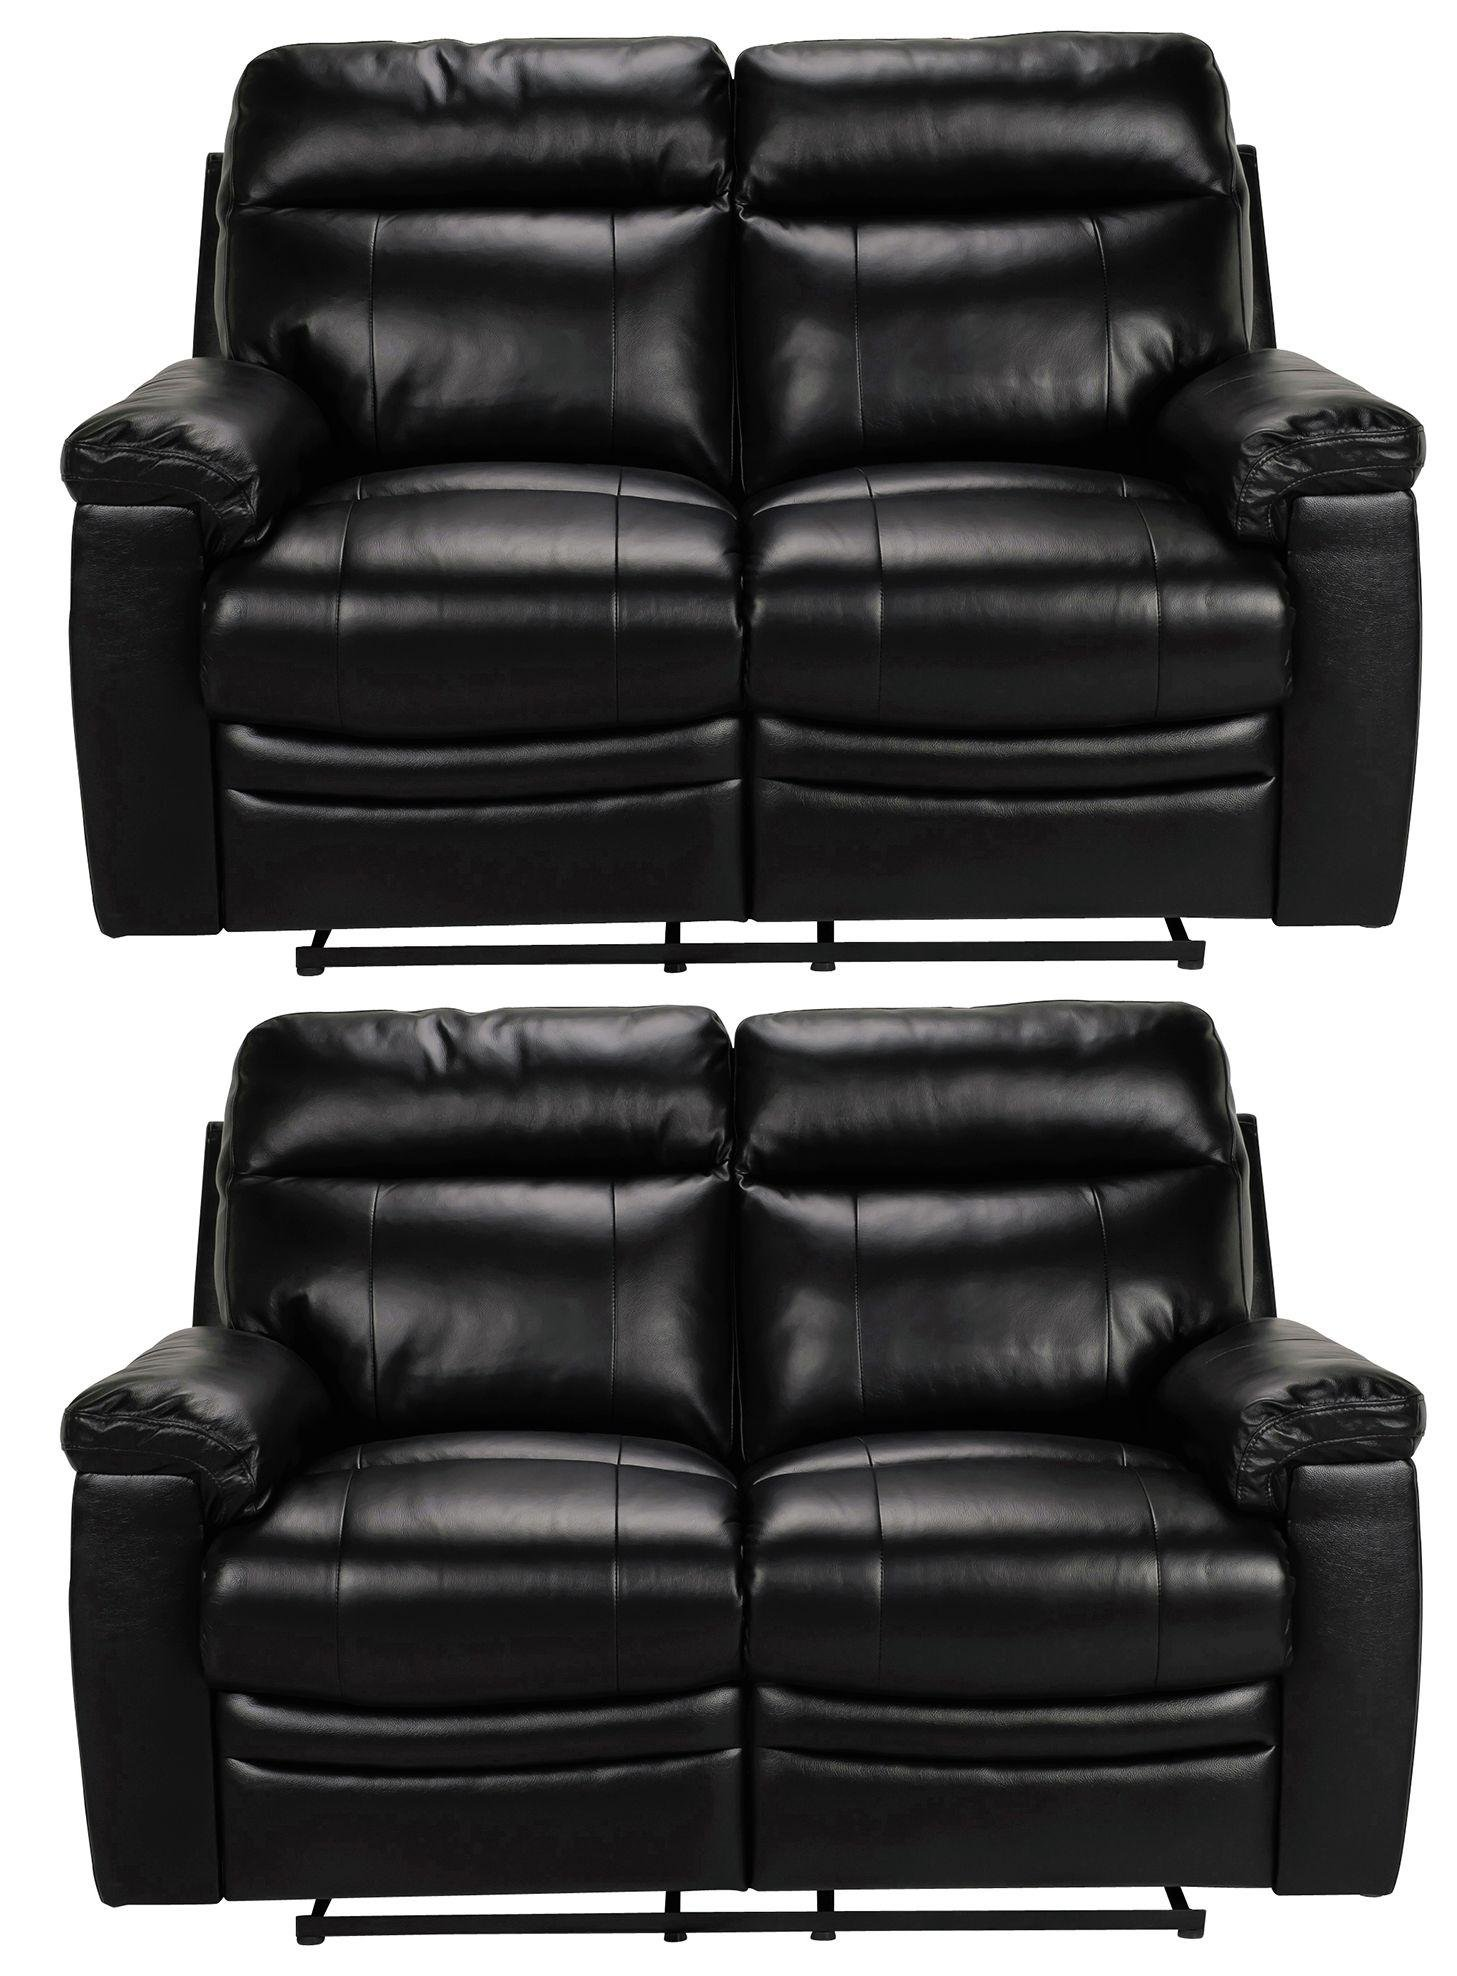 argos black recliner sofa how to fix leather scratches paulo regular and chair